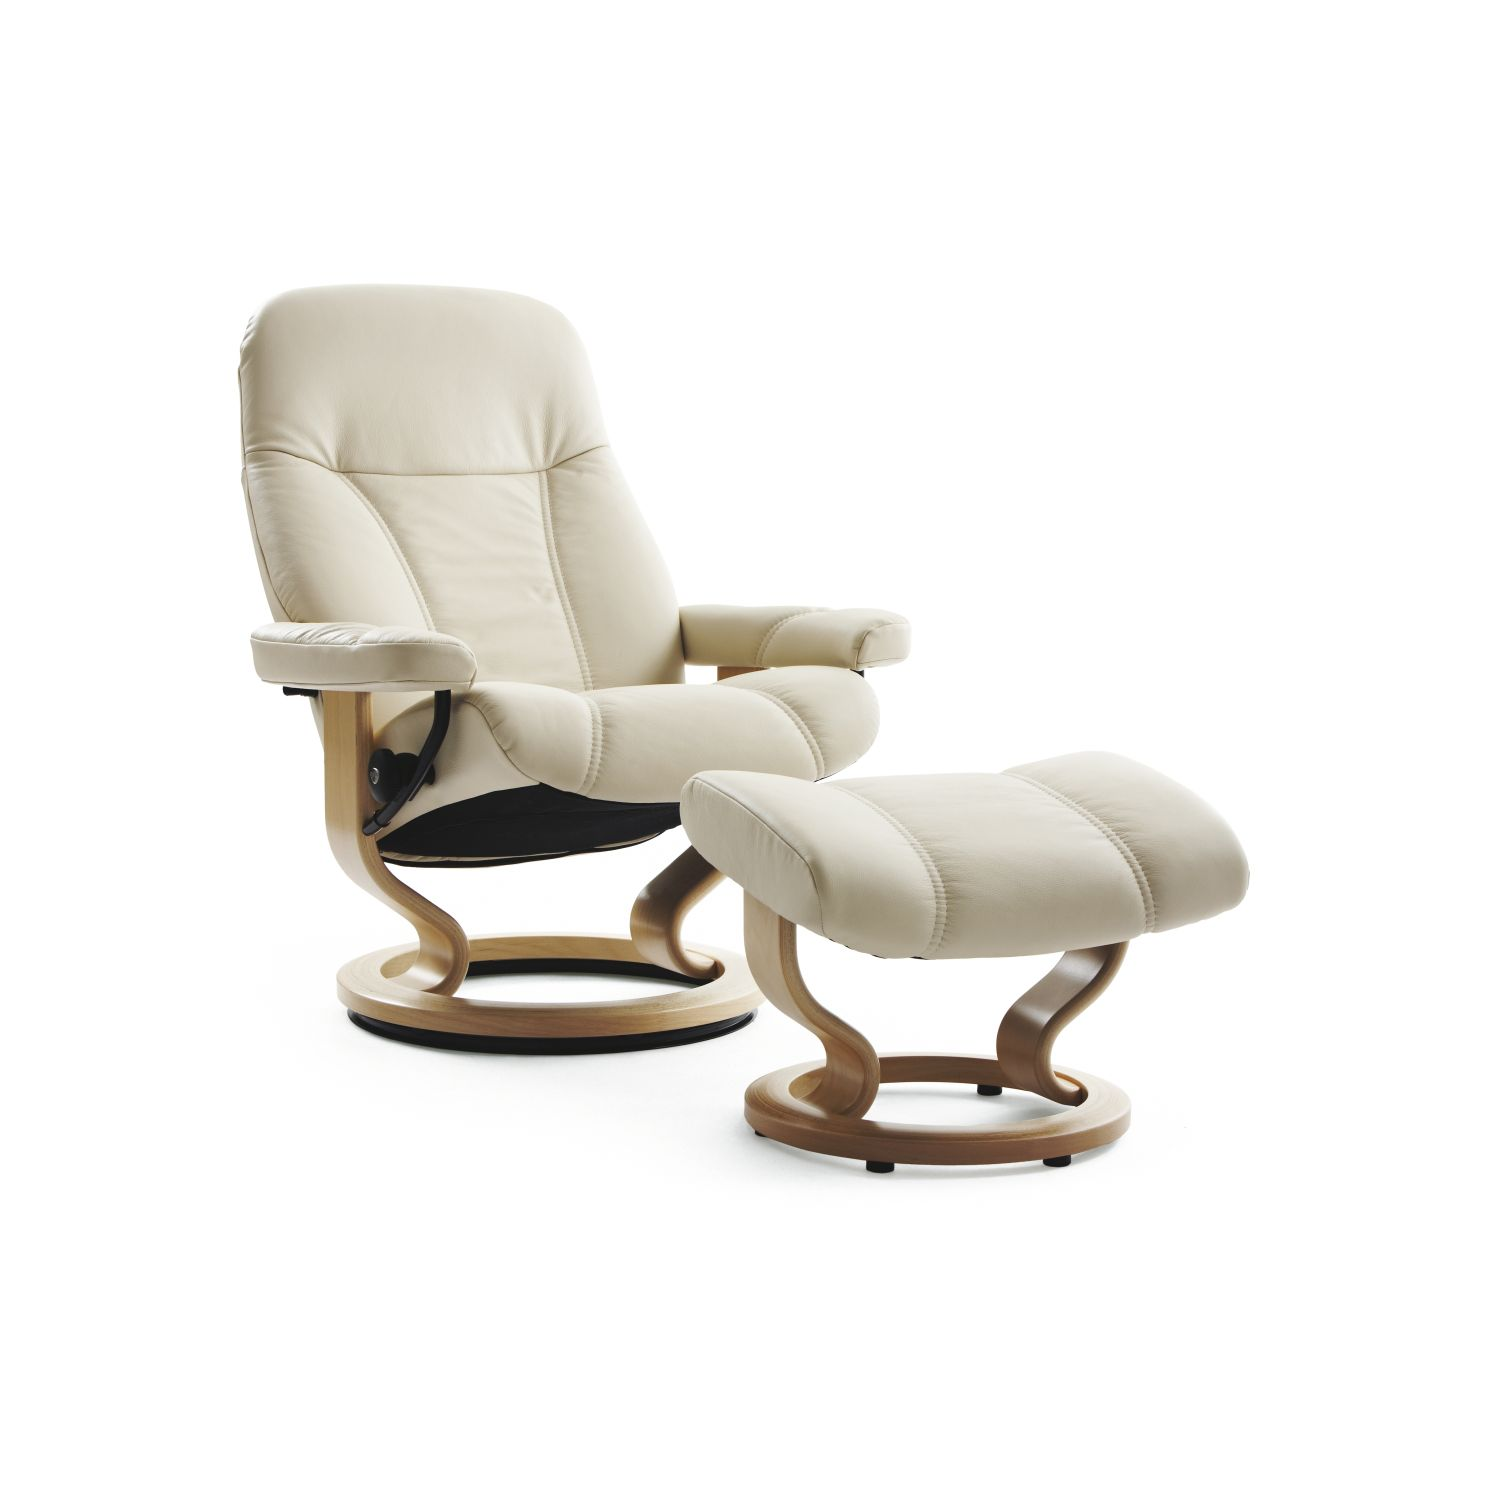 Image of Stressless Consul Large Leather Armchair & Stool